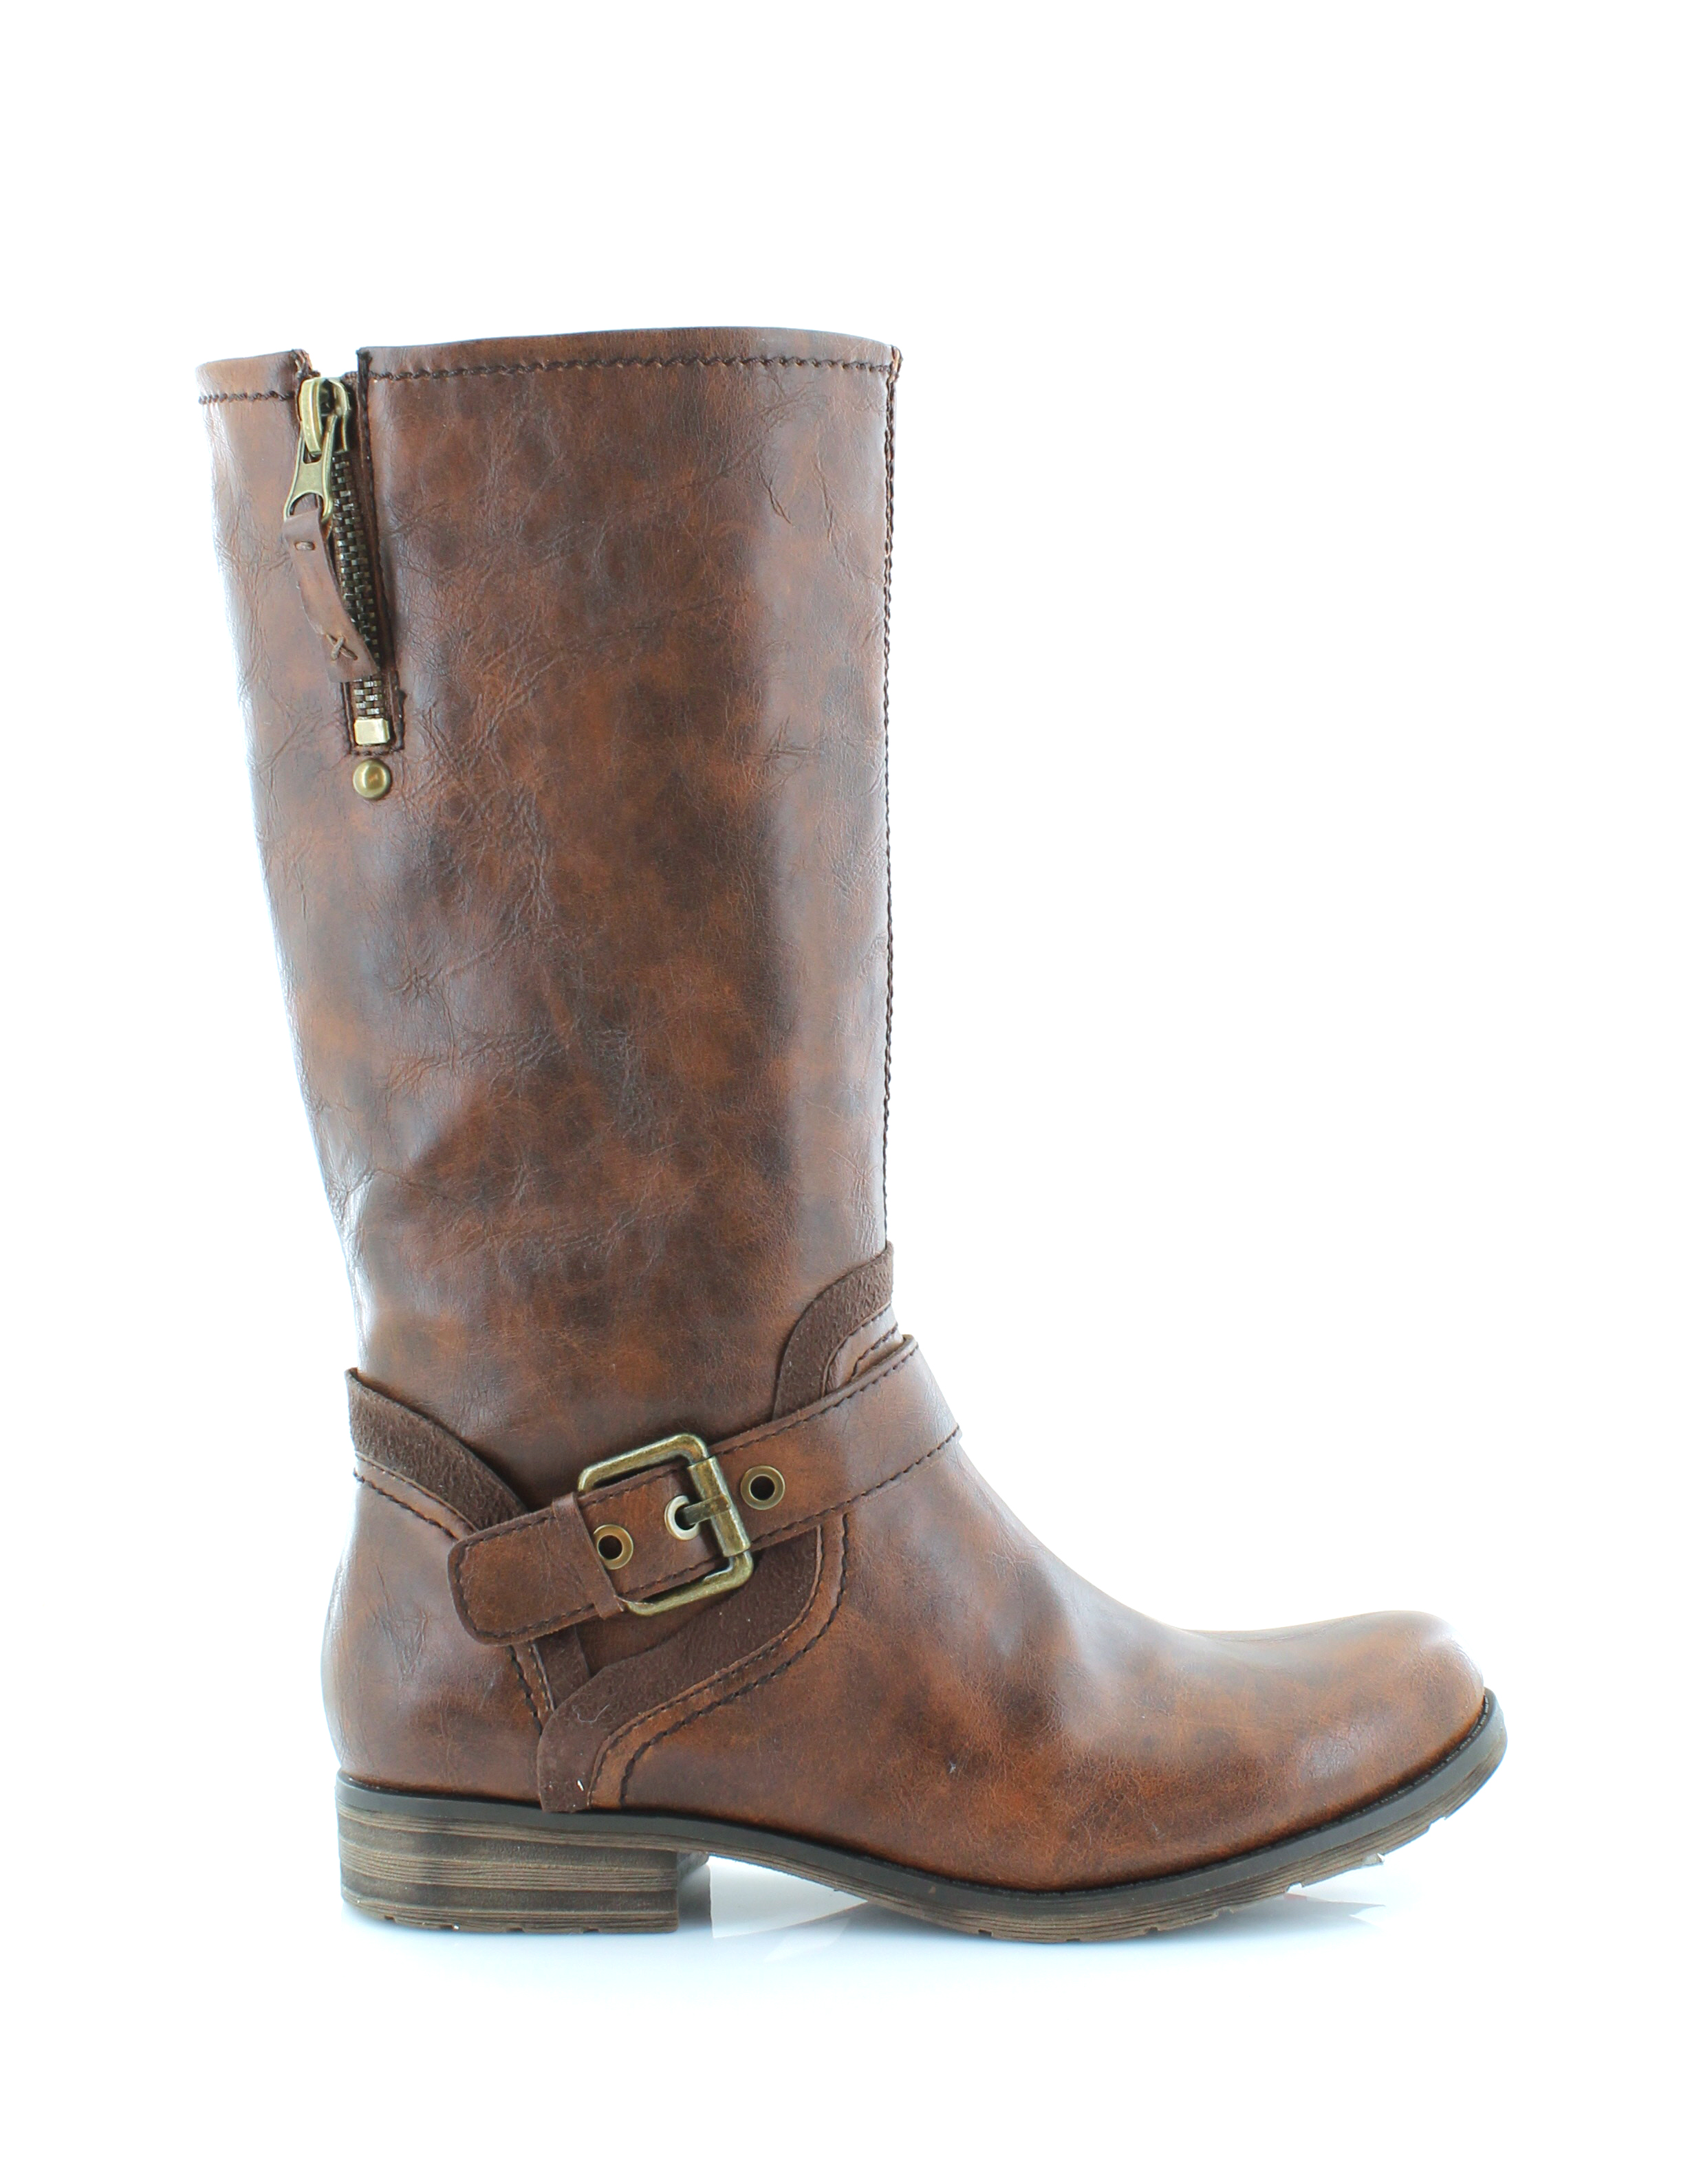 naturalizer balada brown womens shoes size 9 m boots msrp